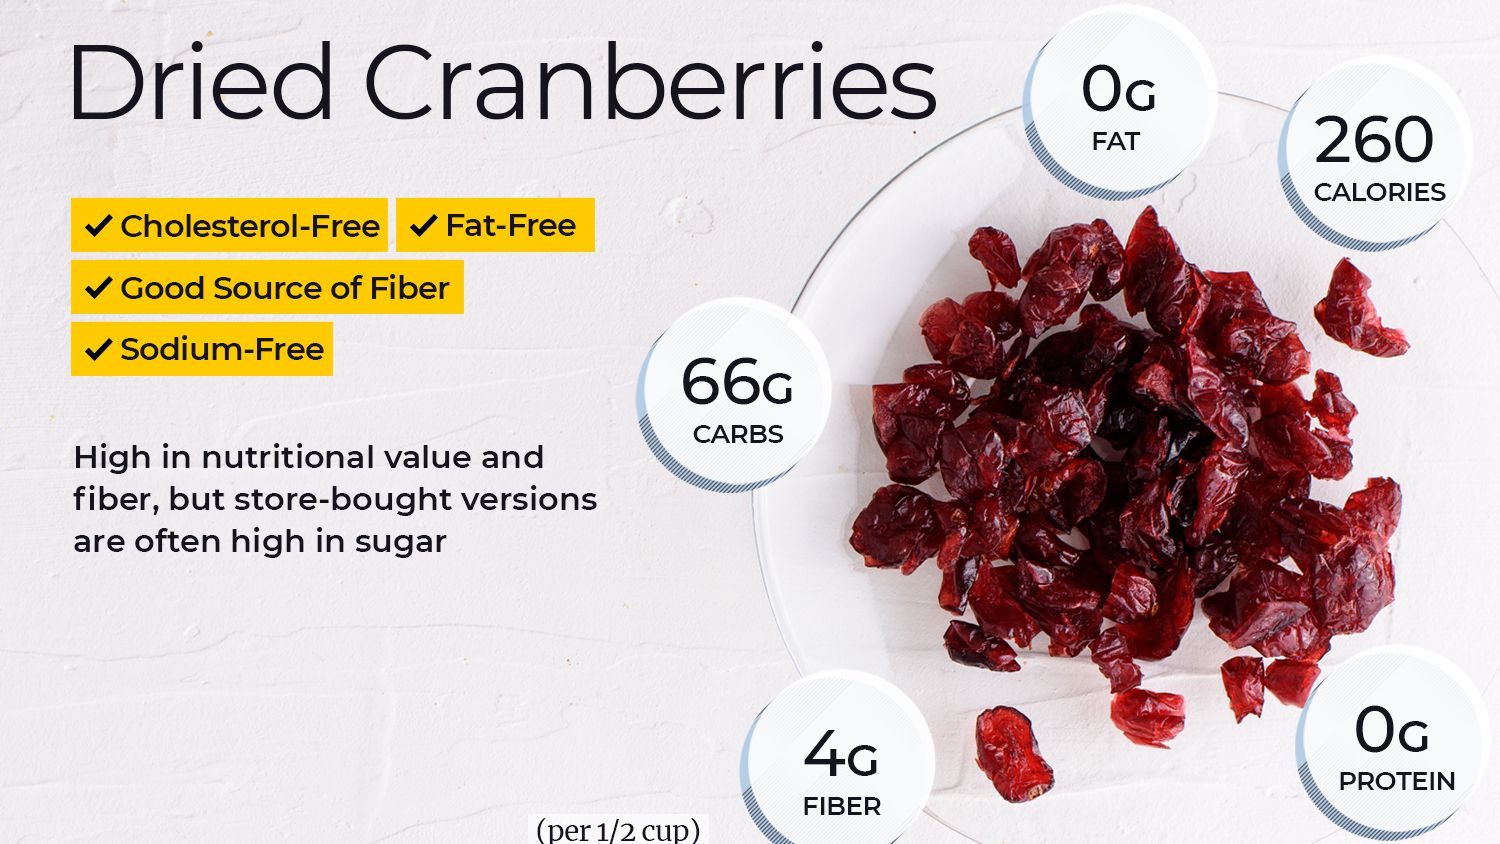 Dried Cranberries Nutrition Facts And Health Benefits